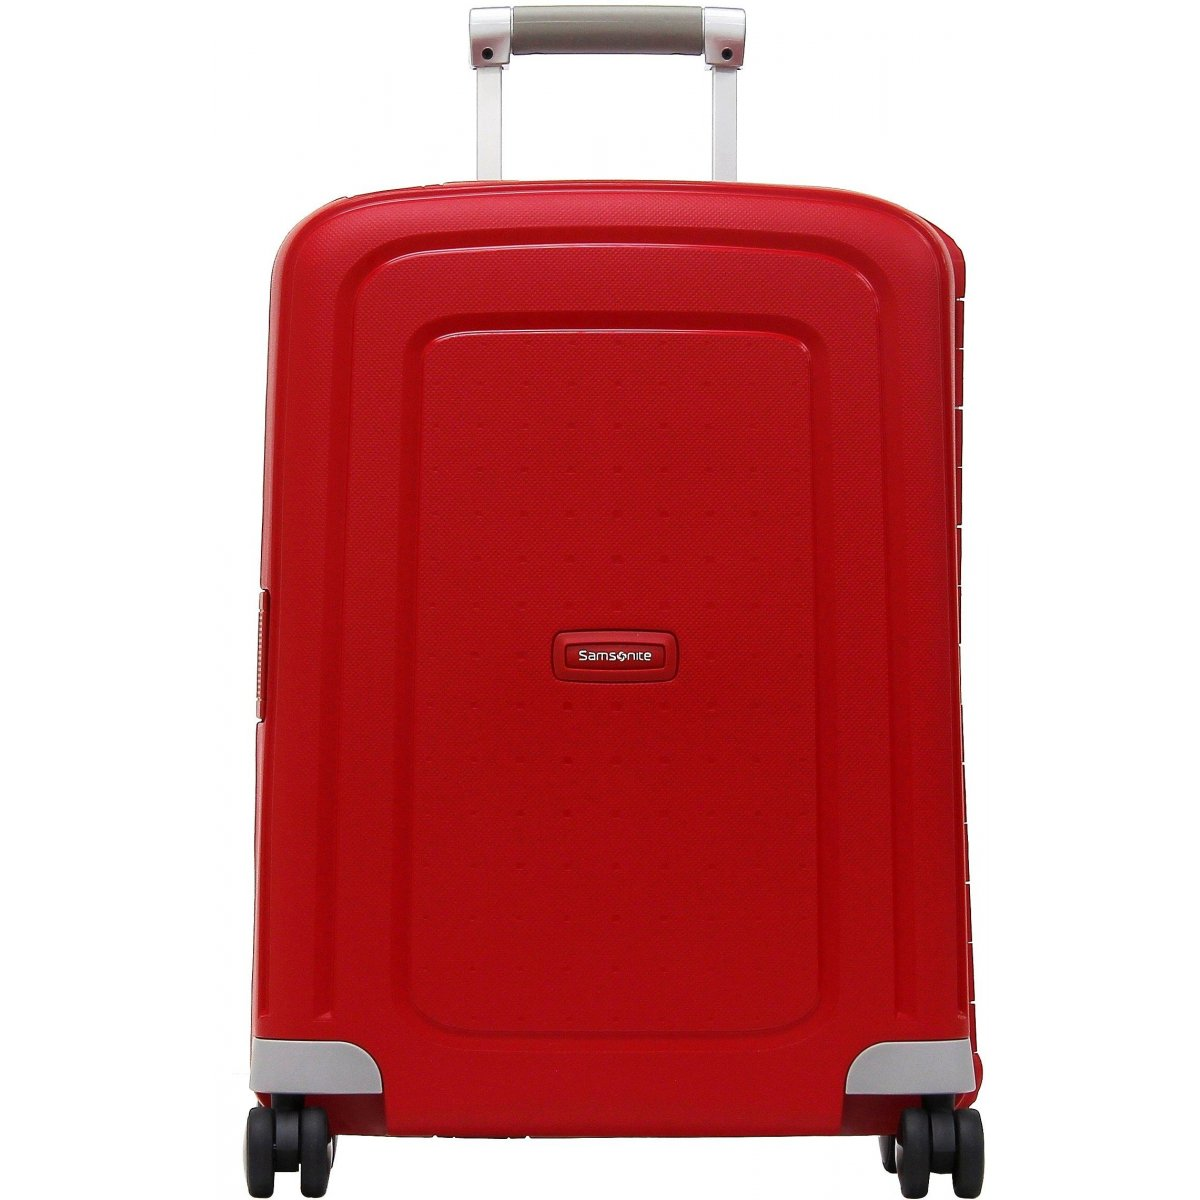 valise cabine samsonite s 39 cure spinner 55cm scure39 couleur principale rouge valise pas. Black Bedroom Furniture Sets. Home Design Ideas